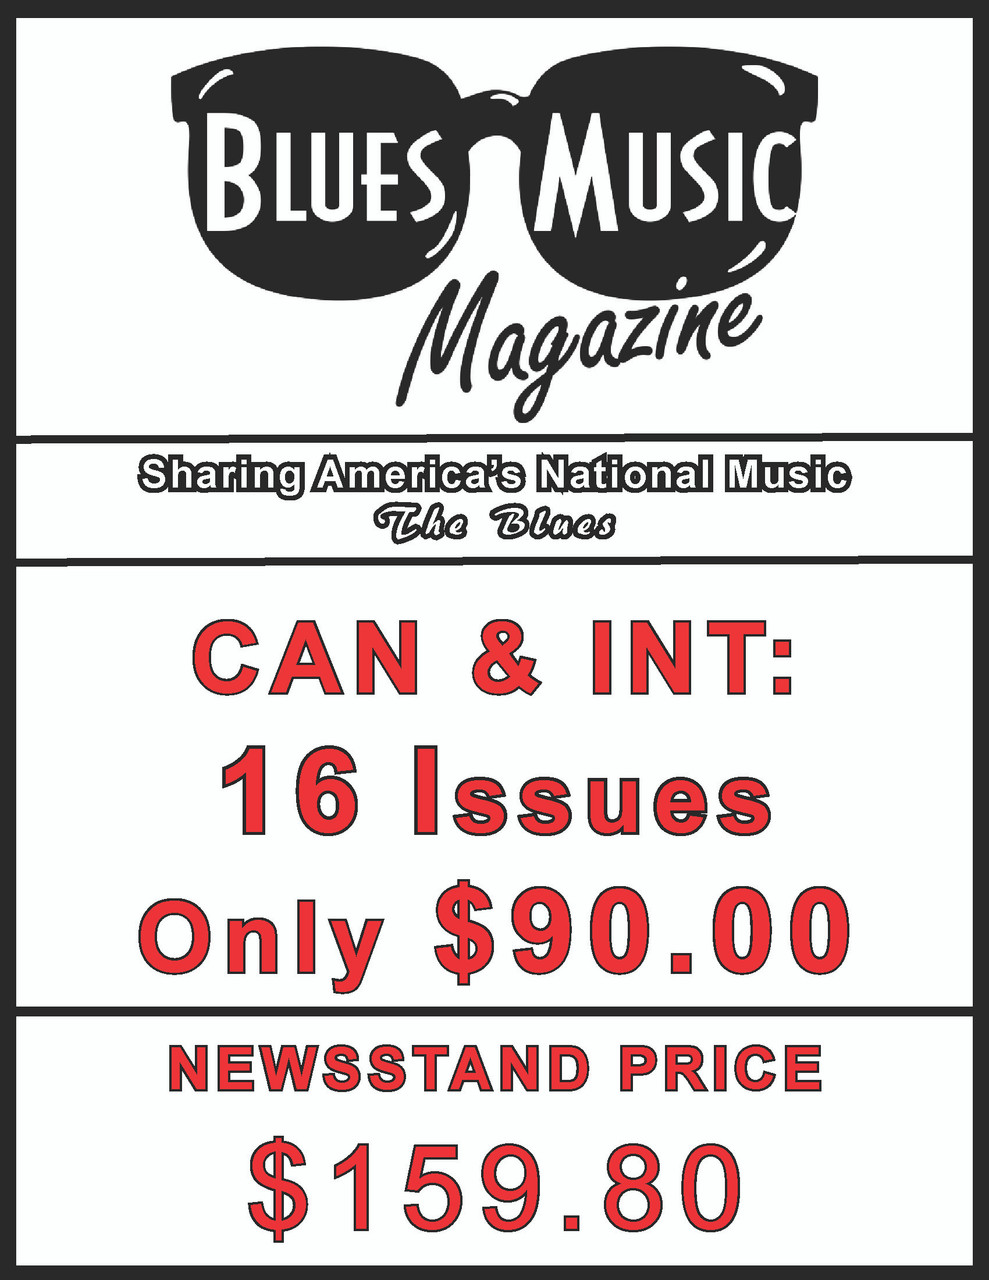 CAN & INT. SUBSCRIBE OR RENEW FOR 16 ISSUES = 4 YEARS